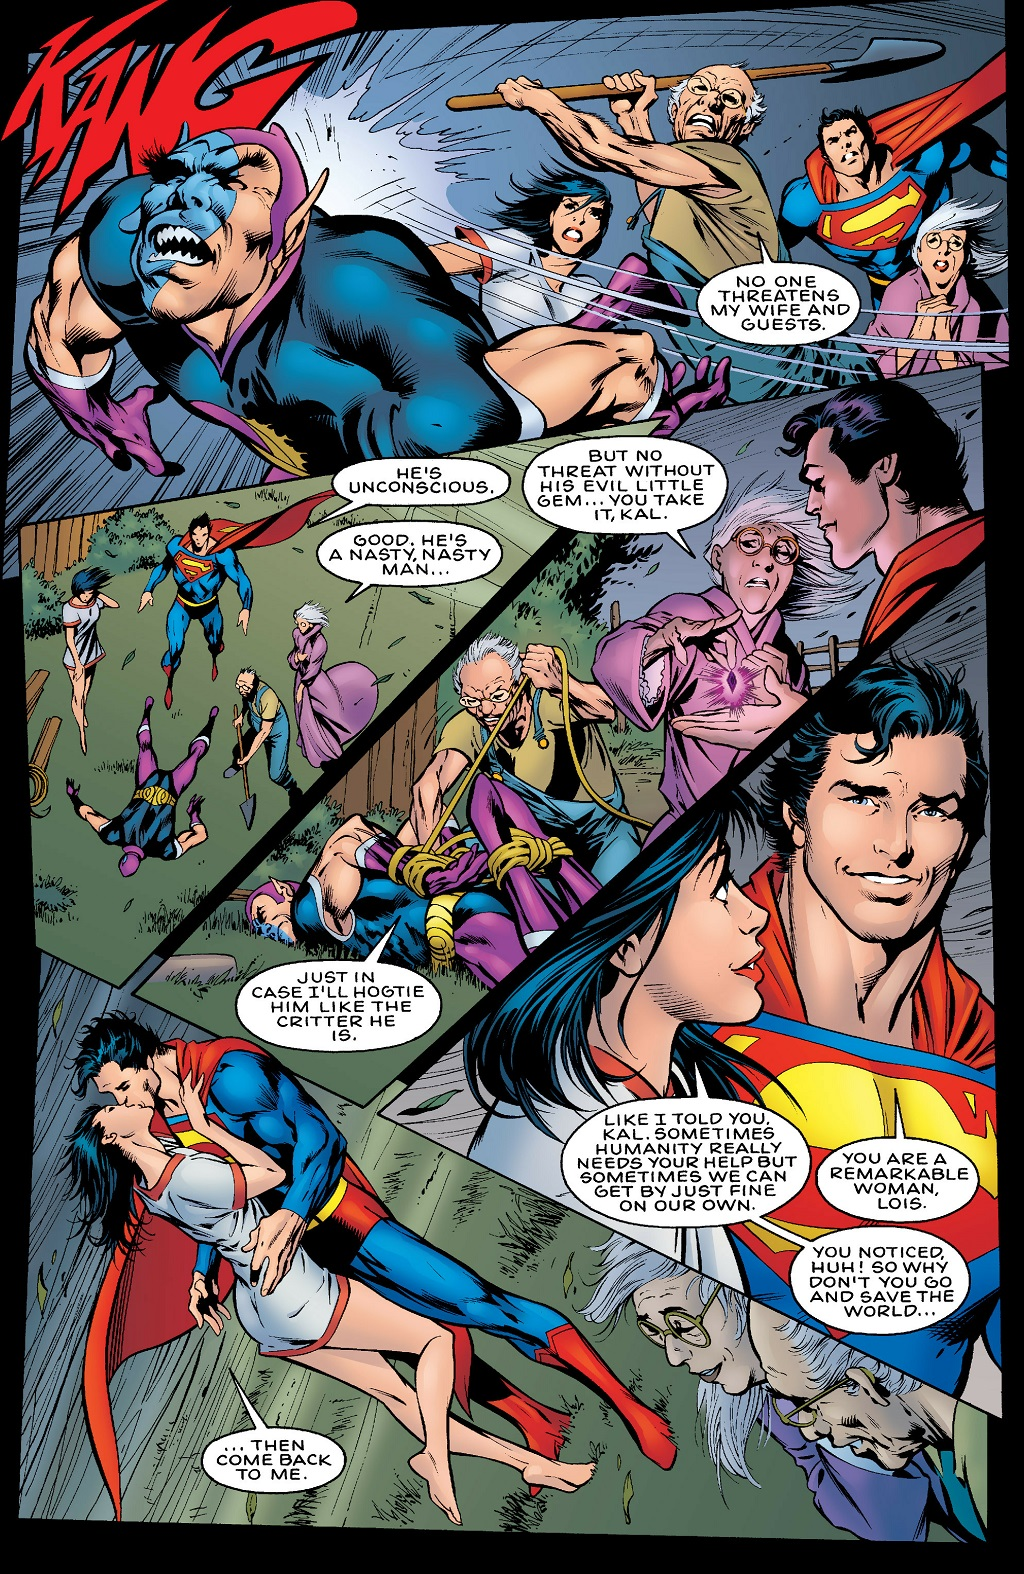 scans_daily | JLA: Another Nail #3